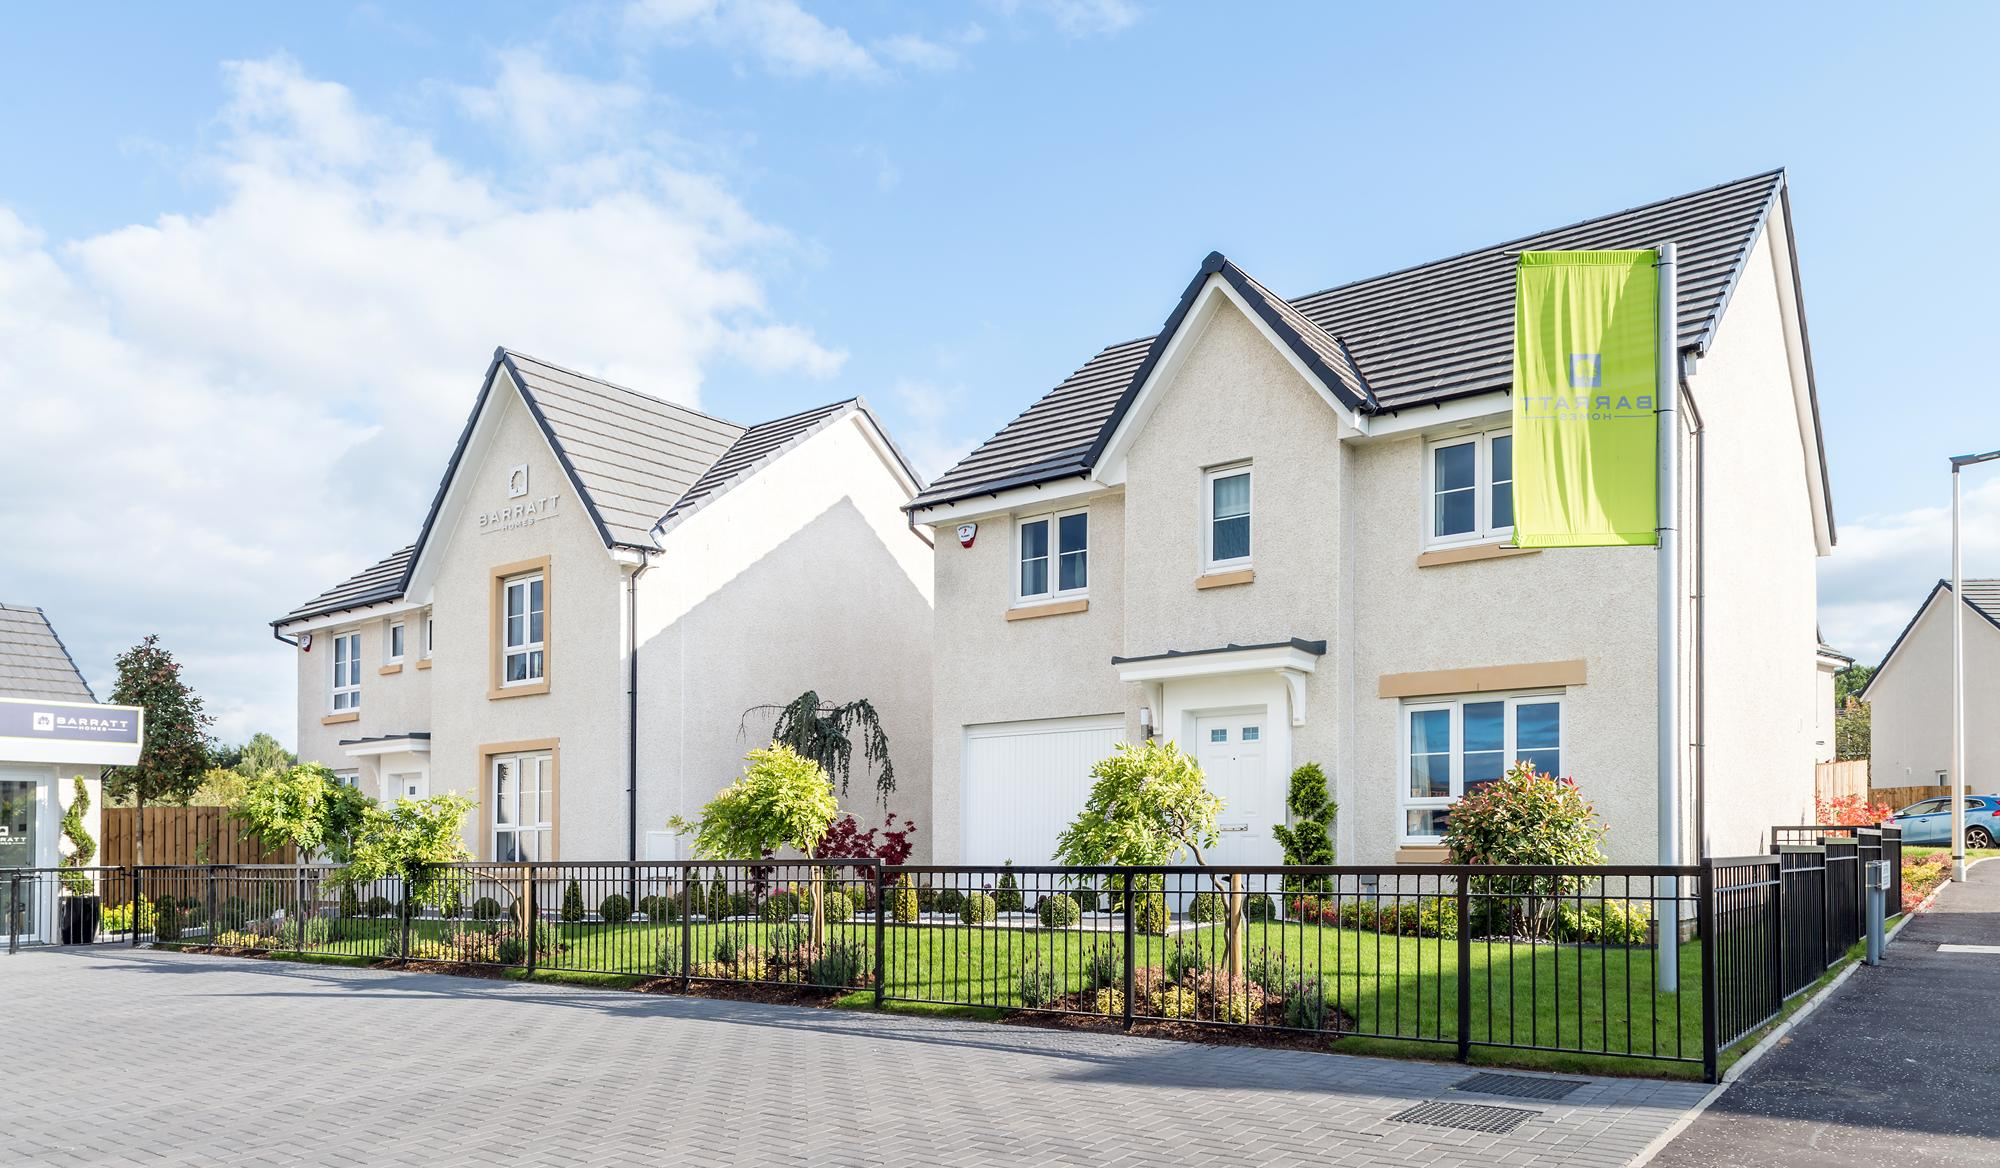 new homes in east kilbride barratt homes merlin garden rh barratthomes co uk